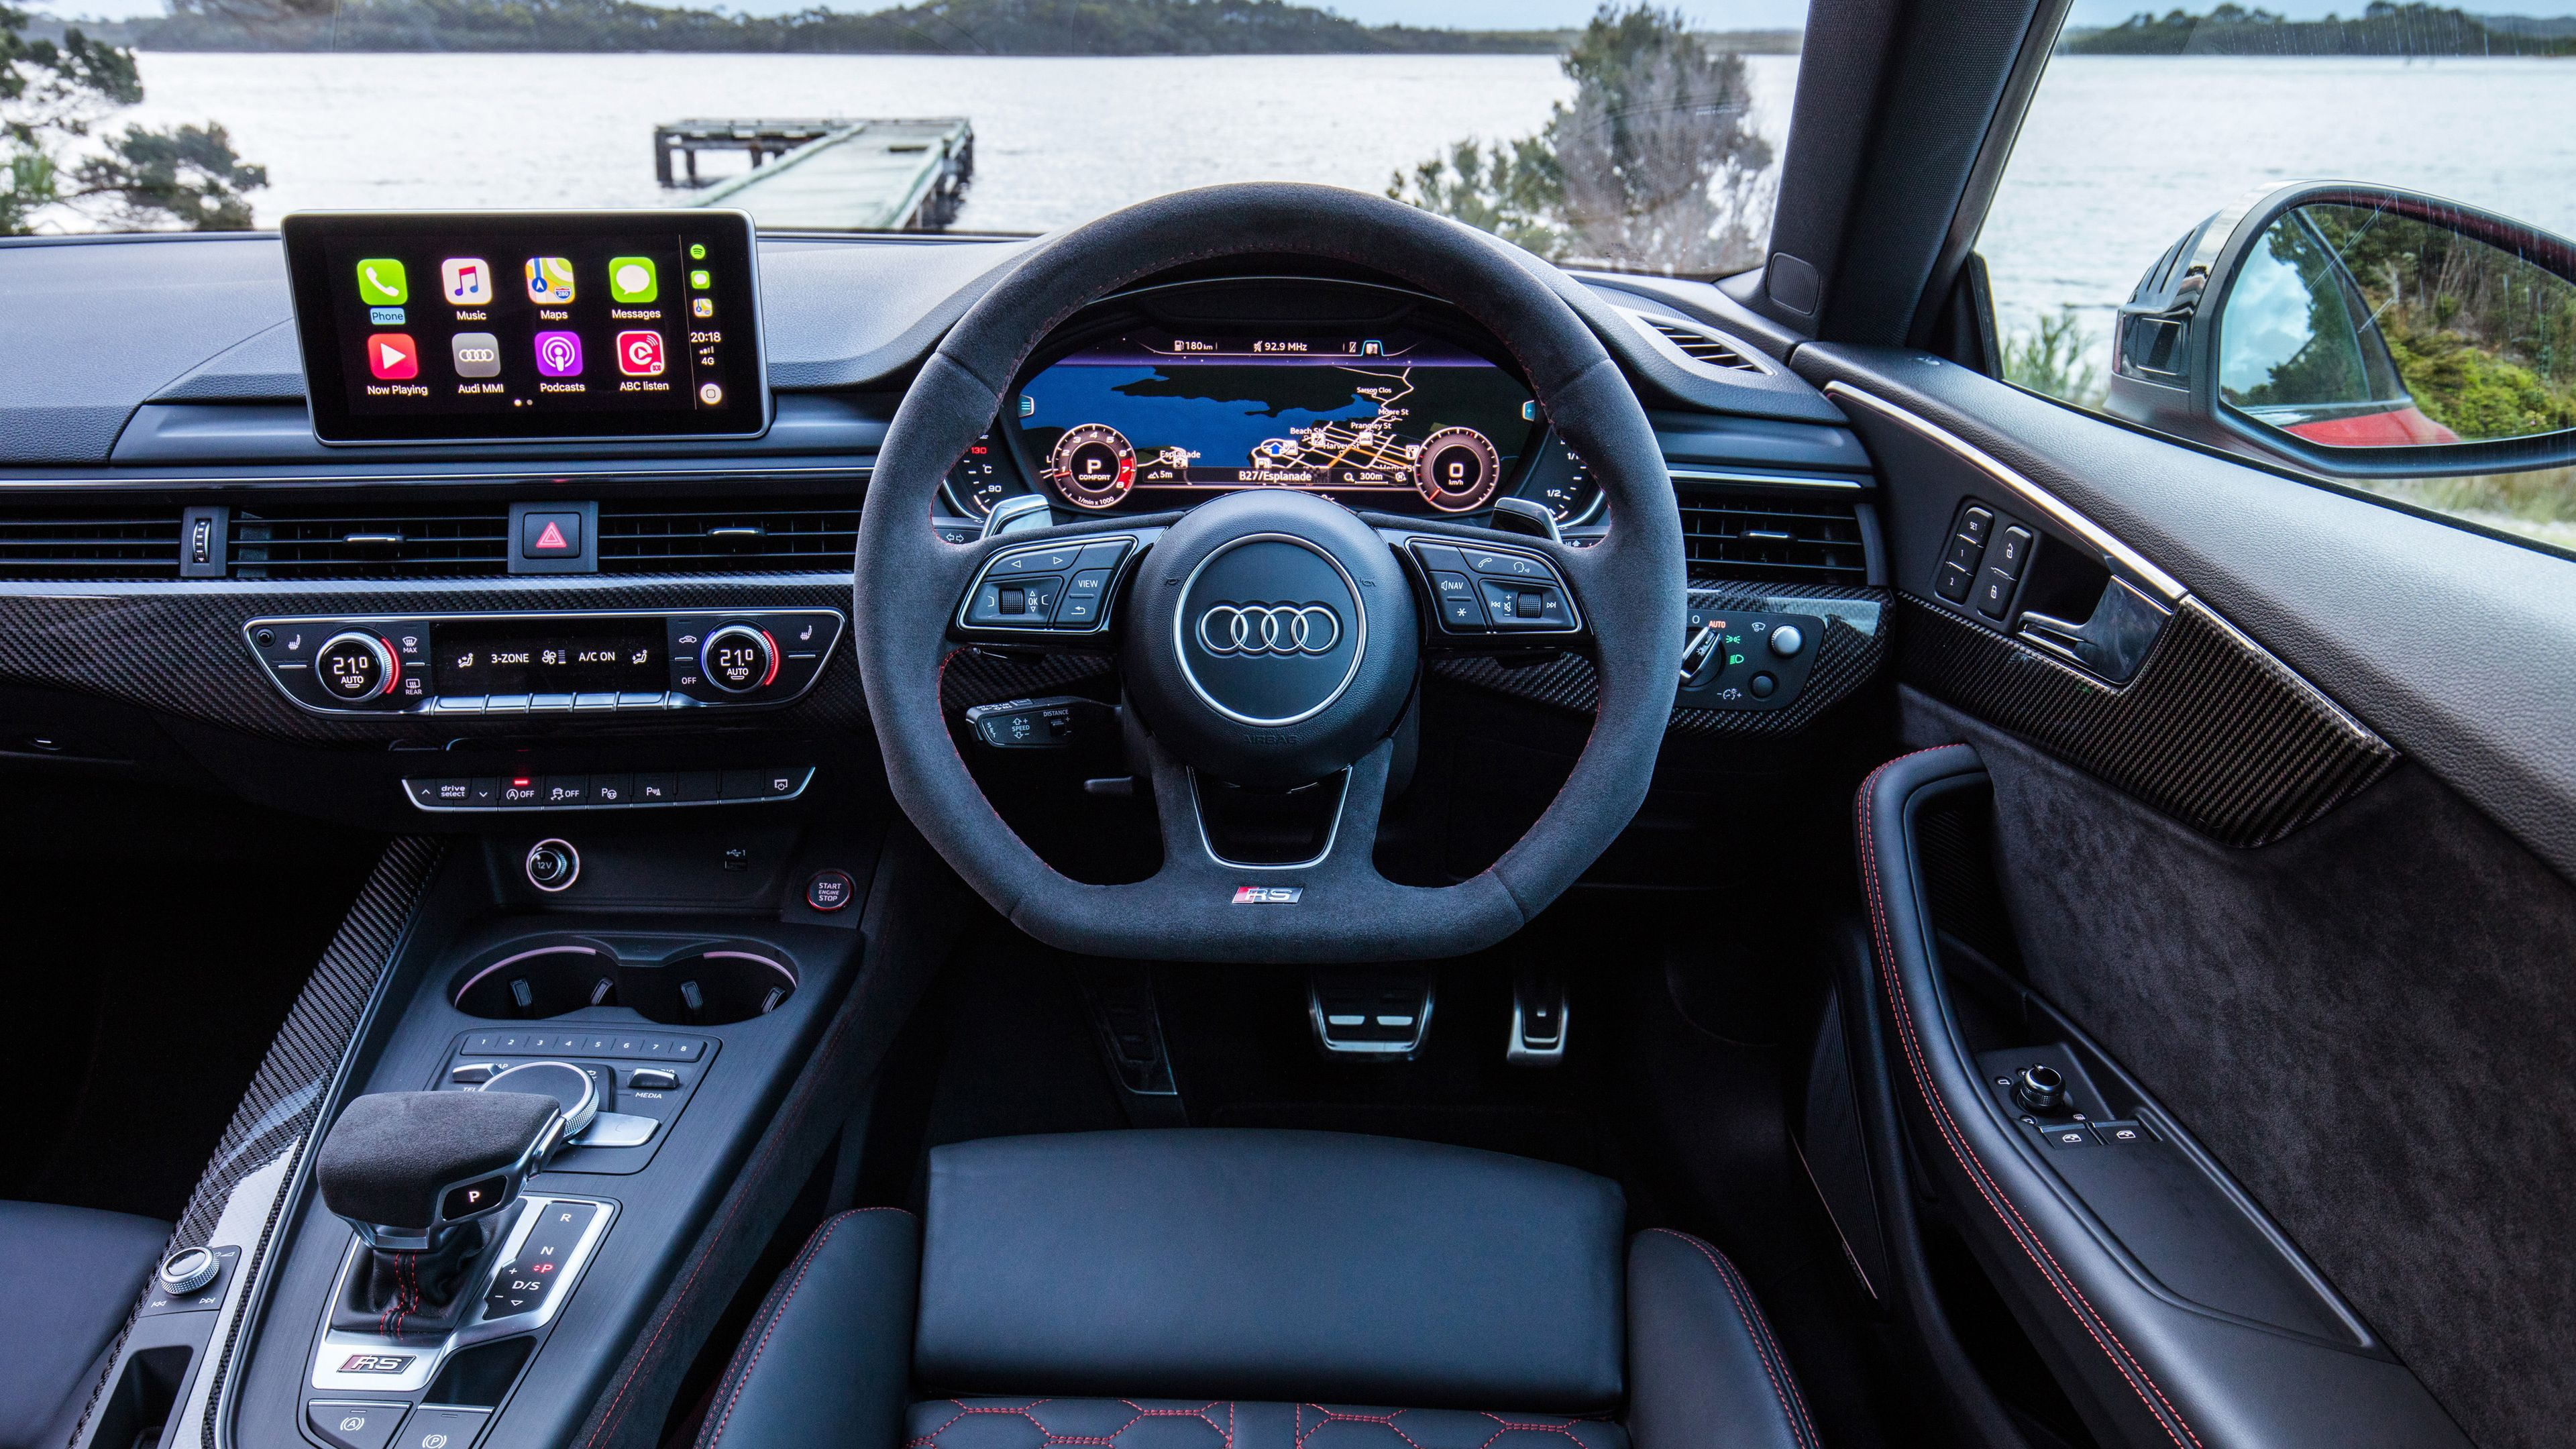 Wallpaper 4k Audi Rs5 Coupe Interior 4k 4k Wallpapers Audi Rs5